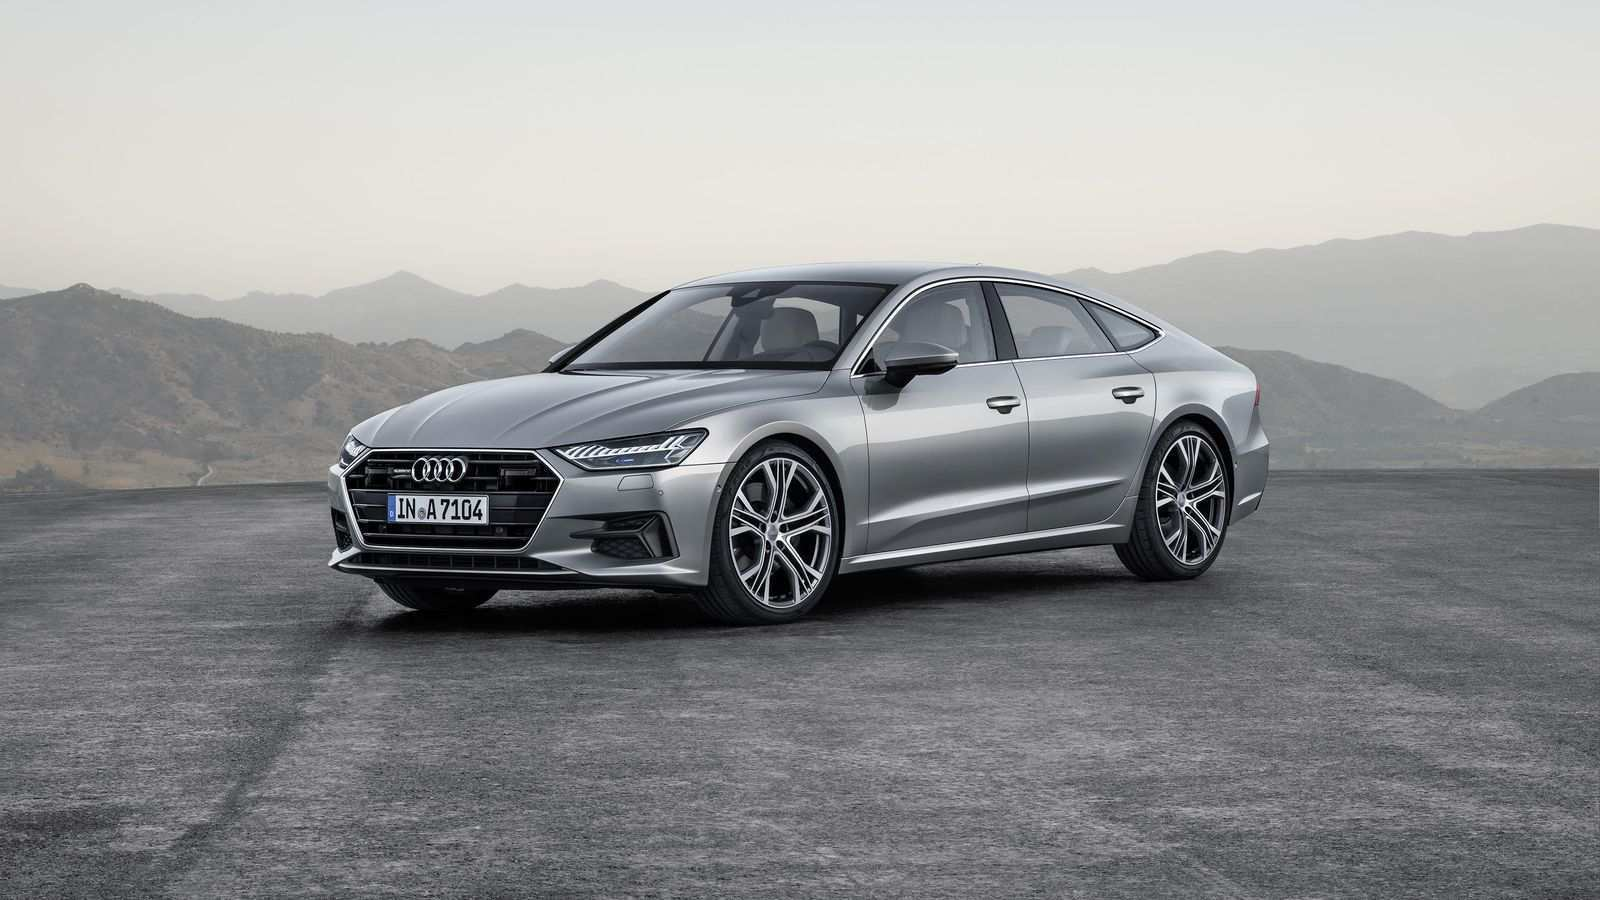 80 Concept of 2019 Audi A7 Debut Research New with 2019 Audi A7 Debut